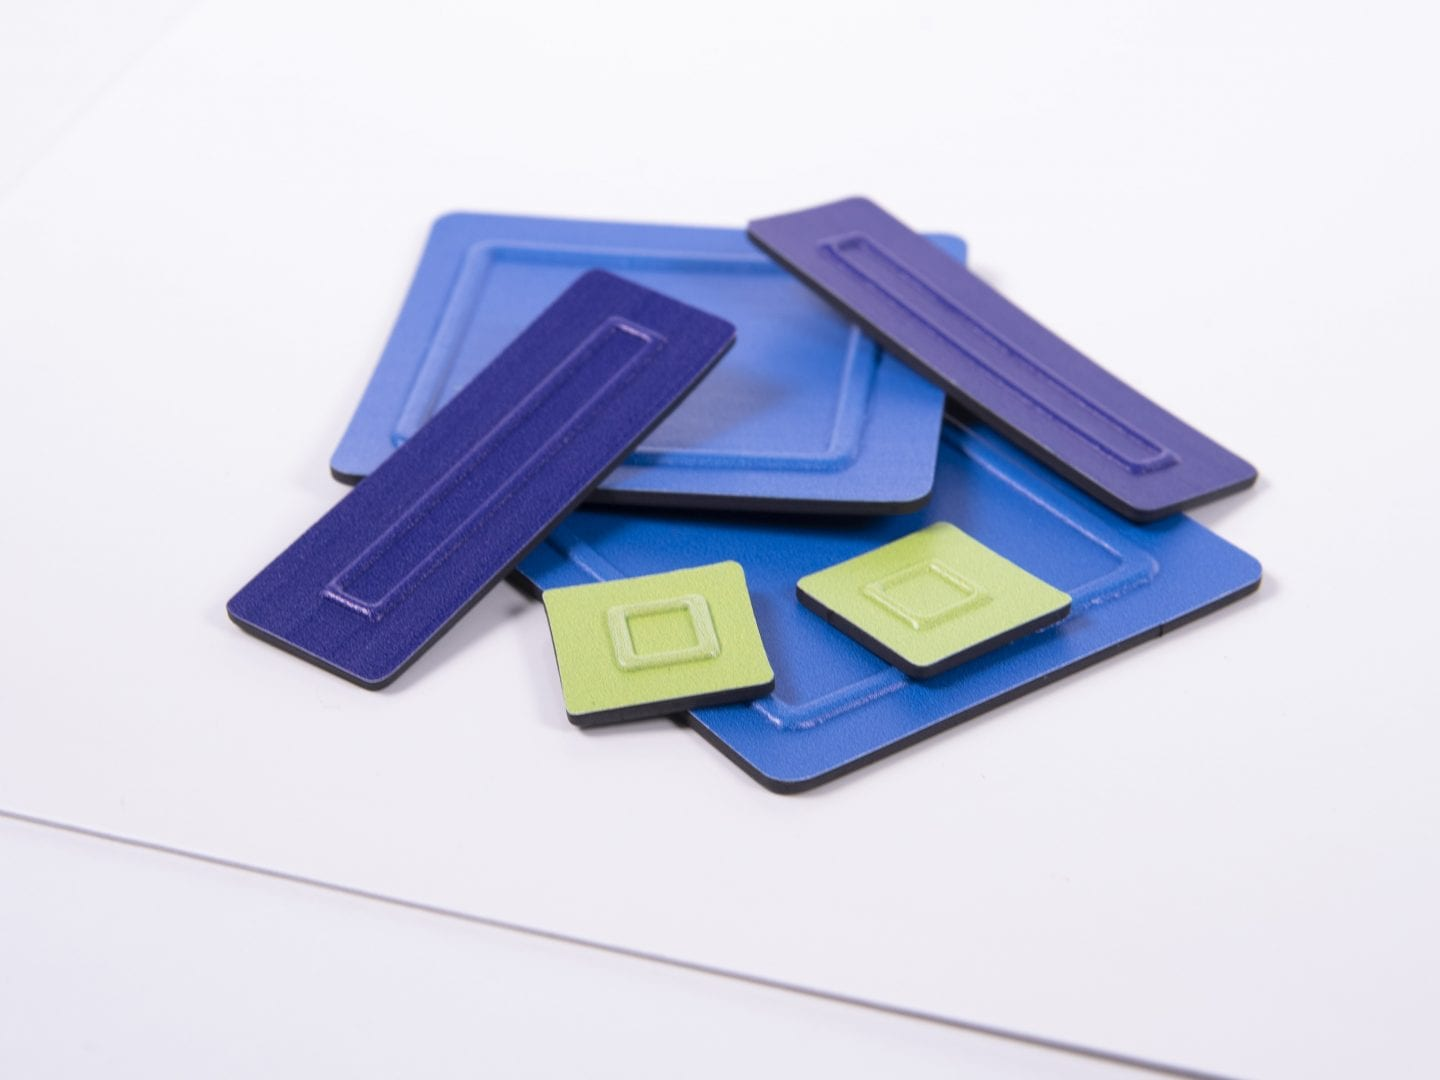 Tactile Algebra Tiles close up One